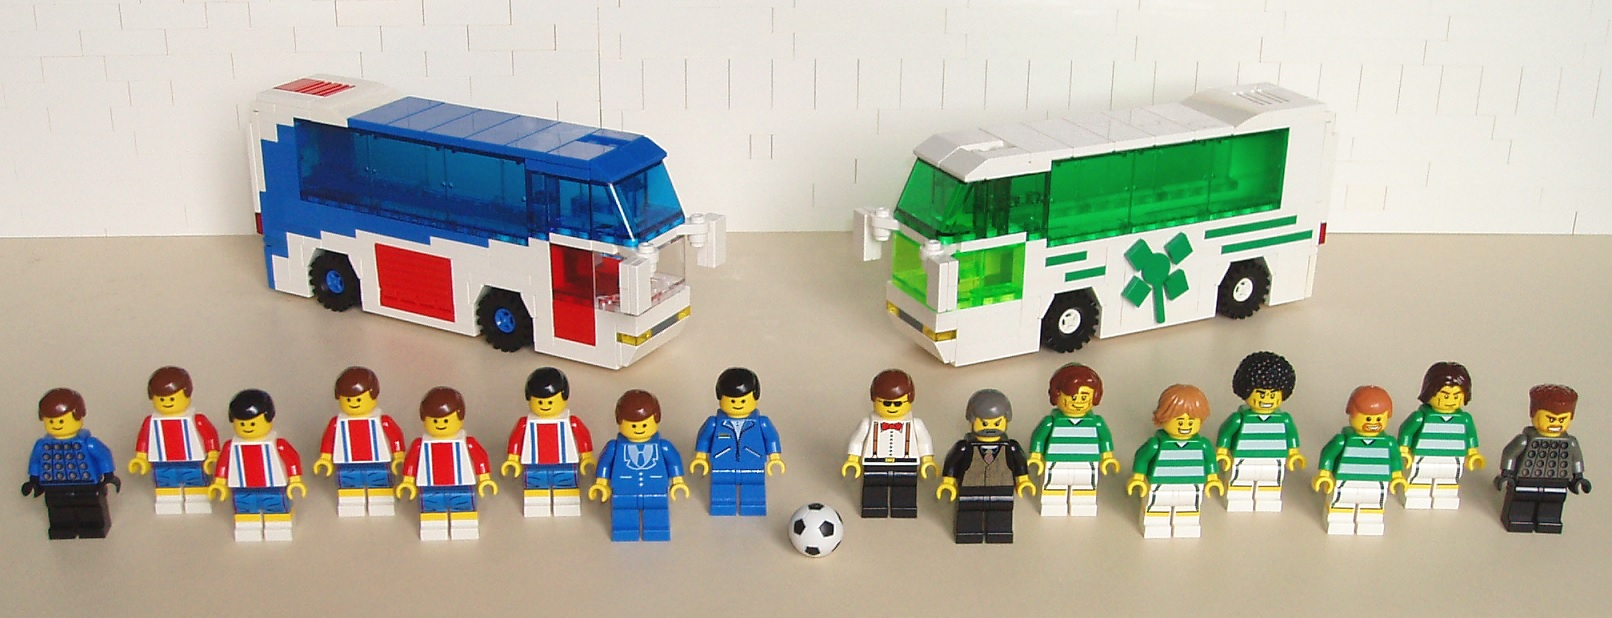 sfzdk_-_soccer_10_-_football_team_buses_06.jpg